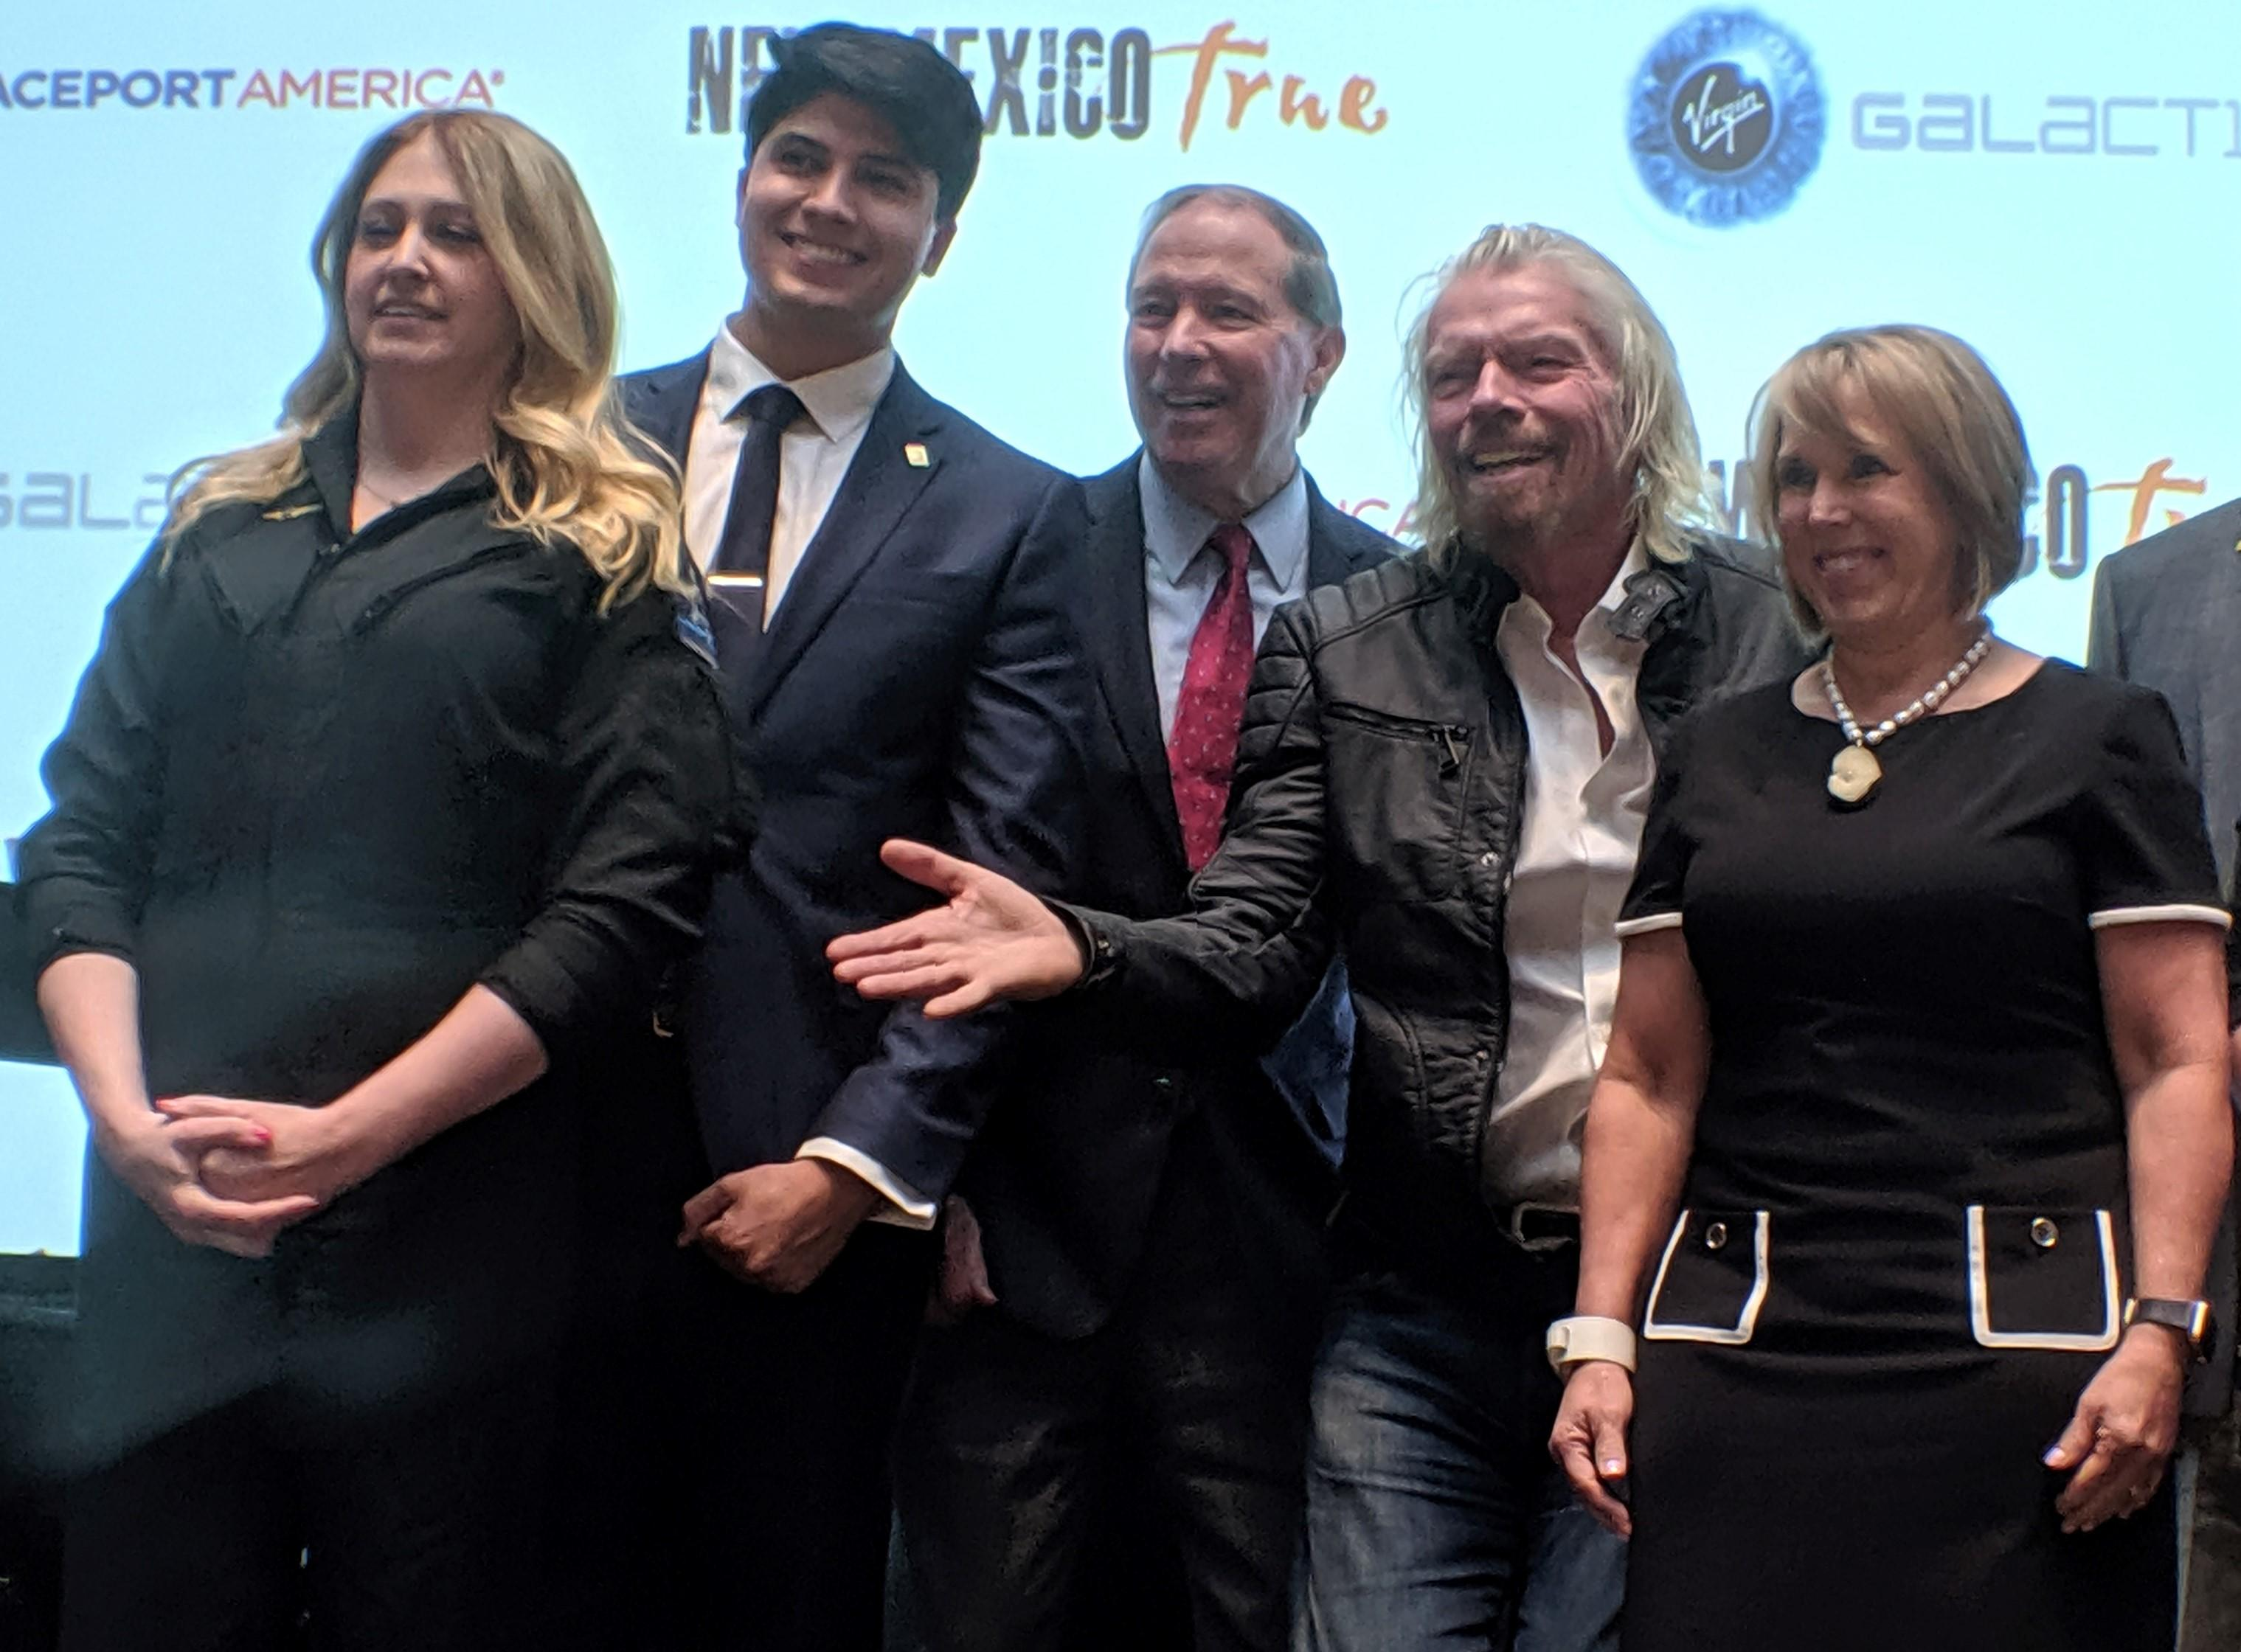 From left to right: Virgin Galactic's first passenger and chief astronaut instructor, Beth Moses, employee Kevin Prieto, Sen. Tom Udall, Richard Branson and New Mexico Gov. Michelle Lujan Grisham.